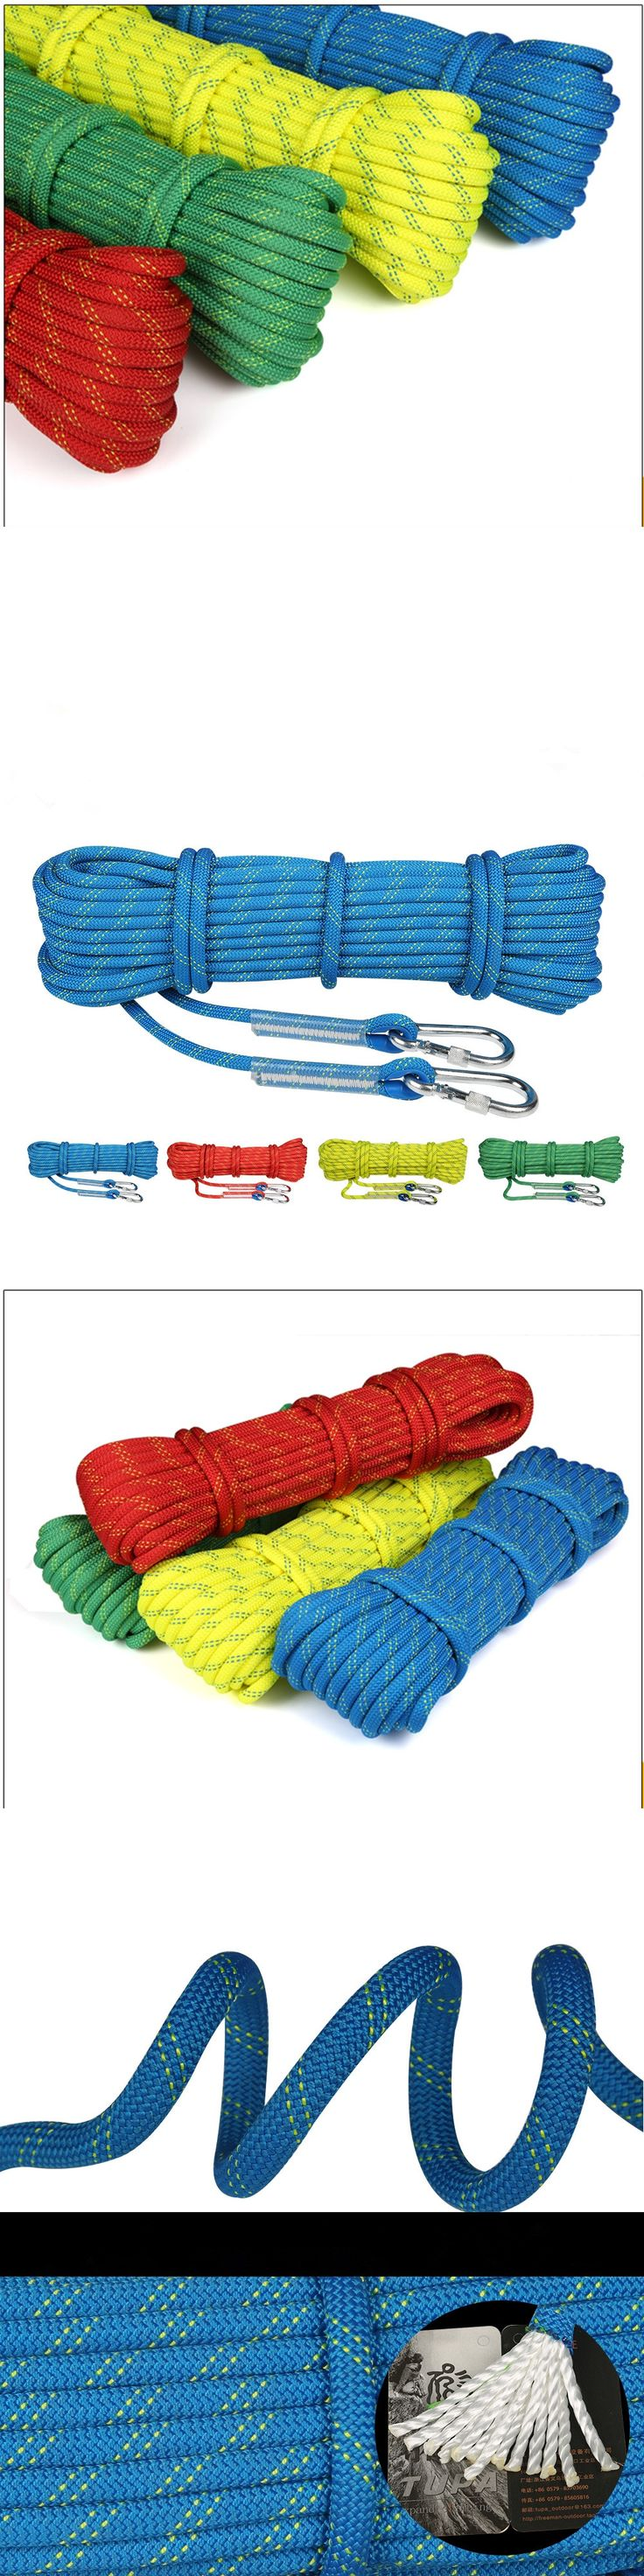 8mm Auxiliary Safety Rope 16KN Rock Climbing Mountaineering Parachute Cord with Carabiners Outdoor Rescue Hiking Equipment